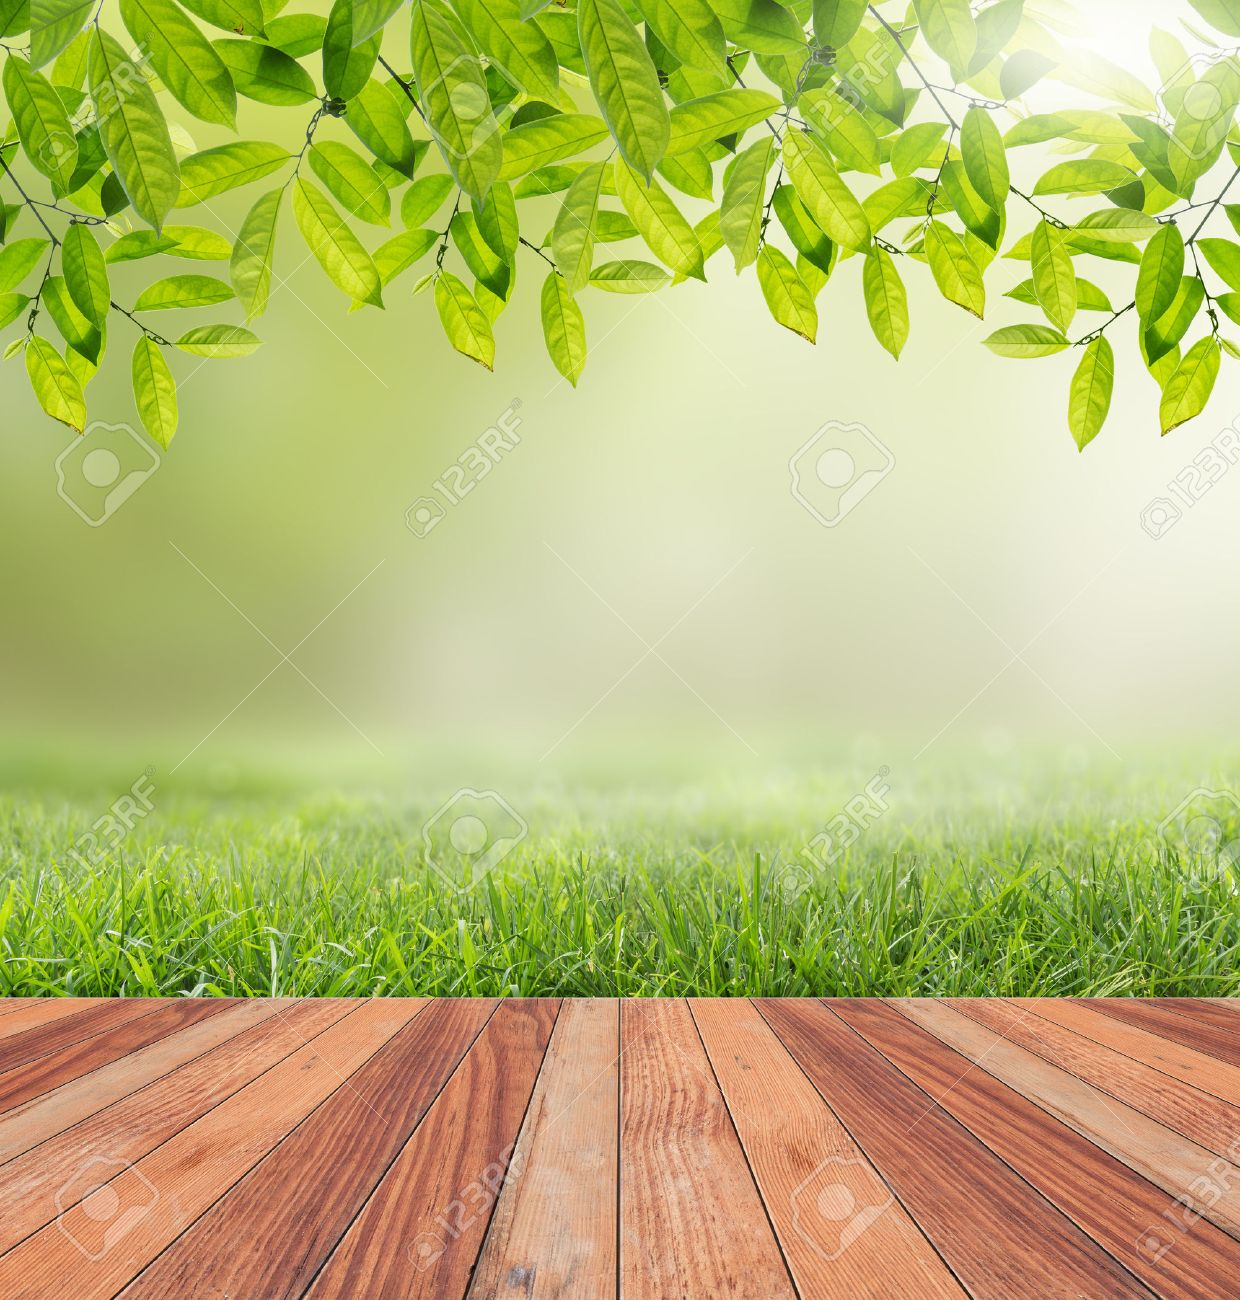 wooden floor and sunlight nature background stock photo picture